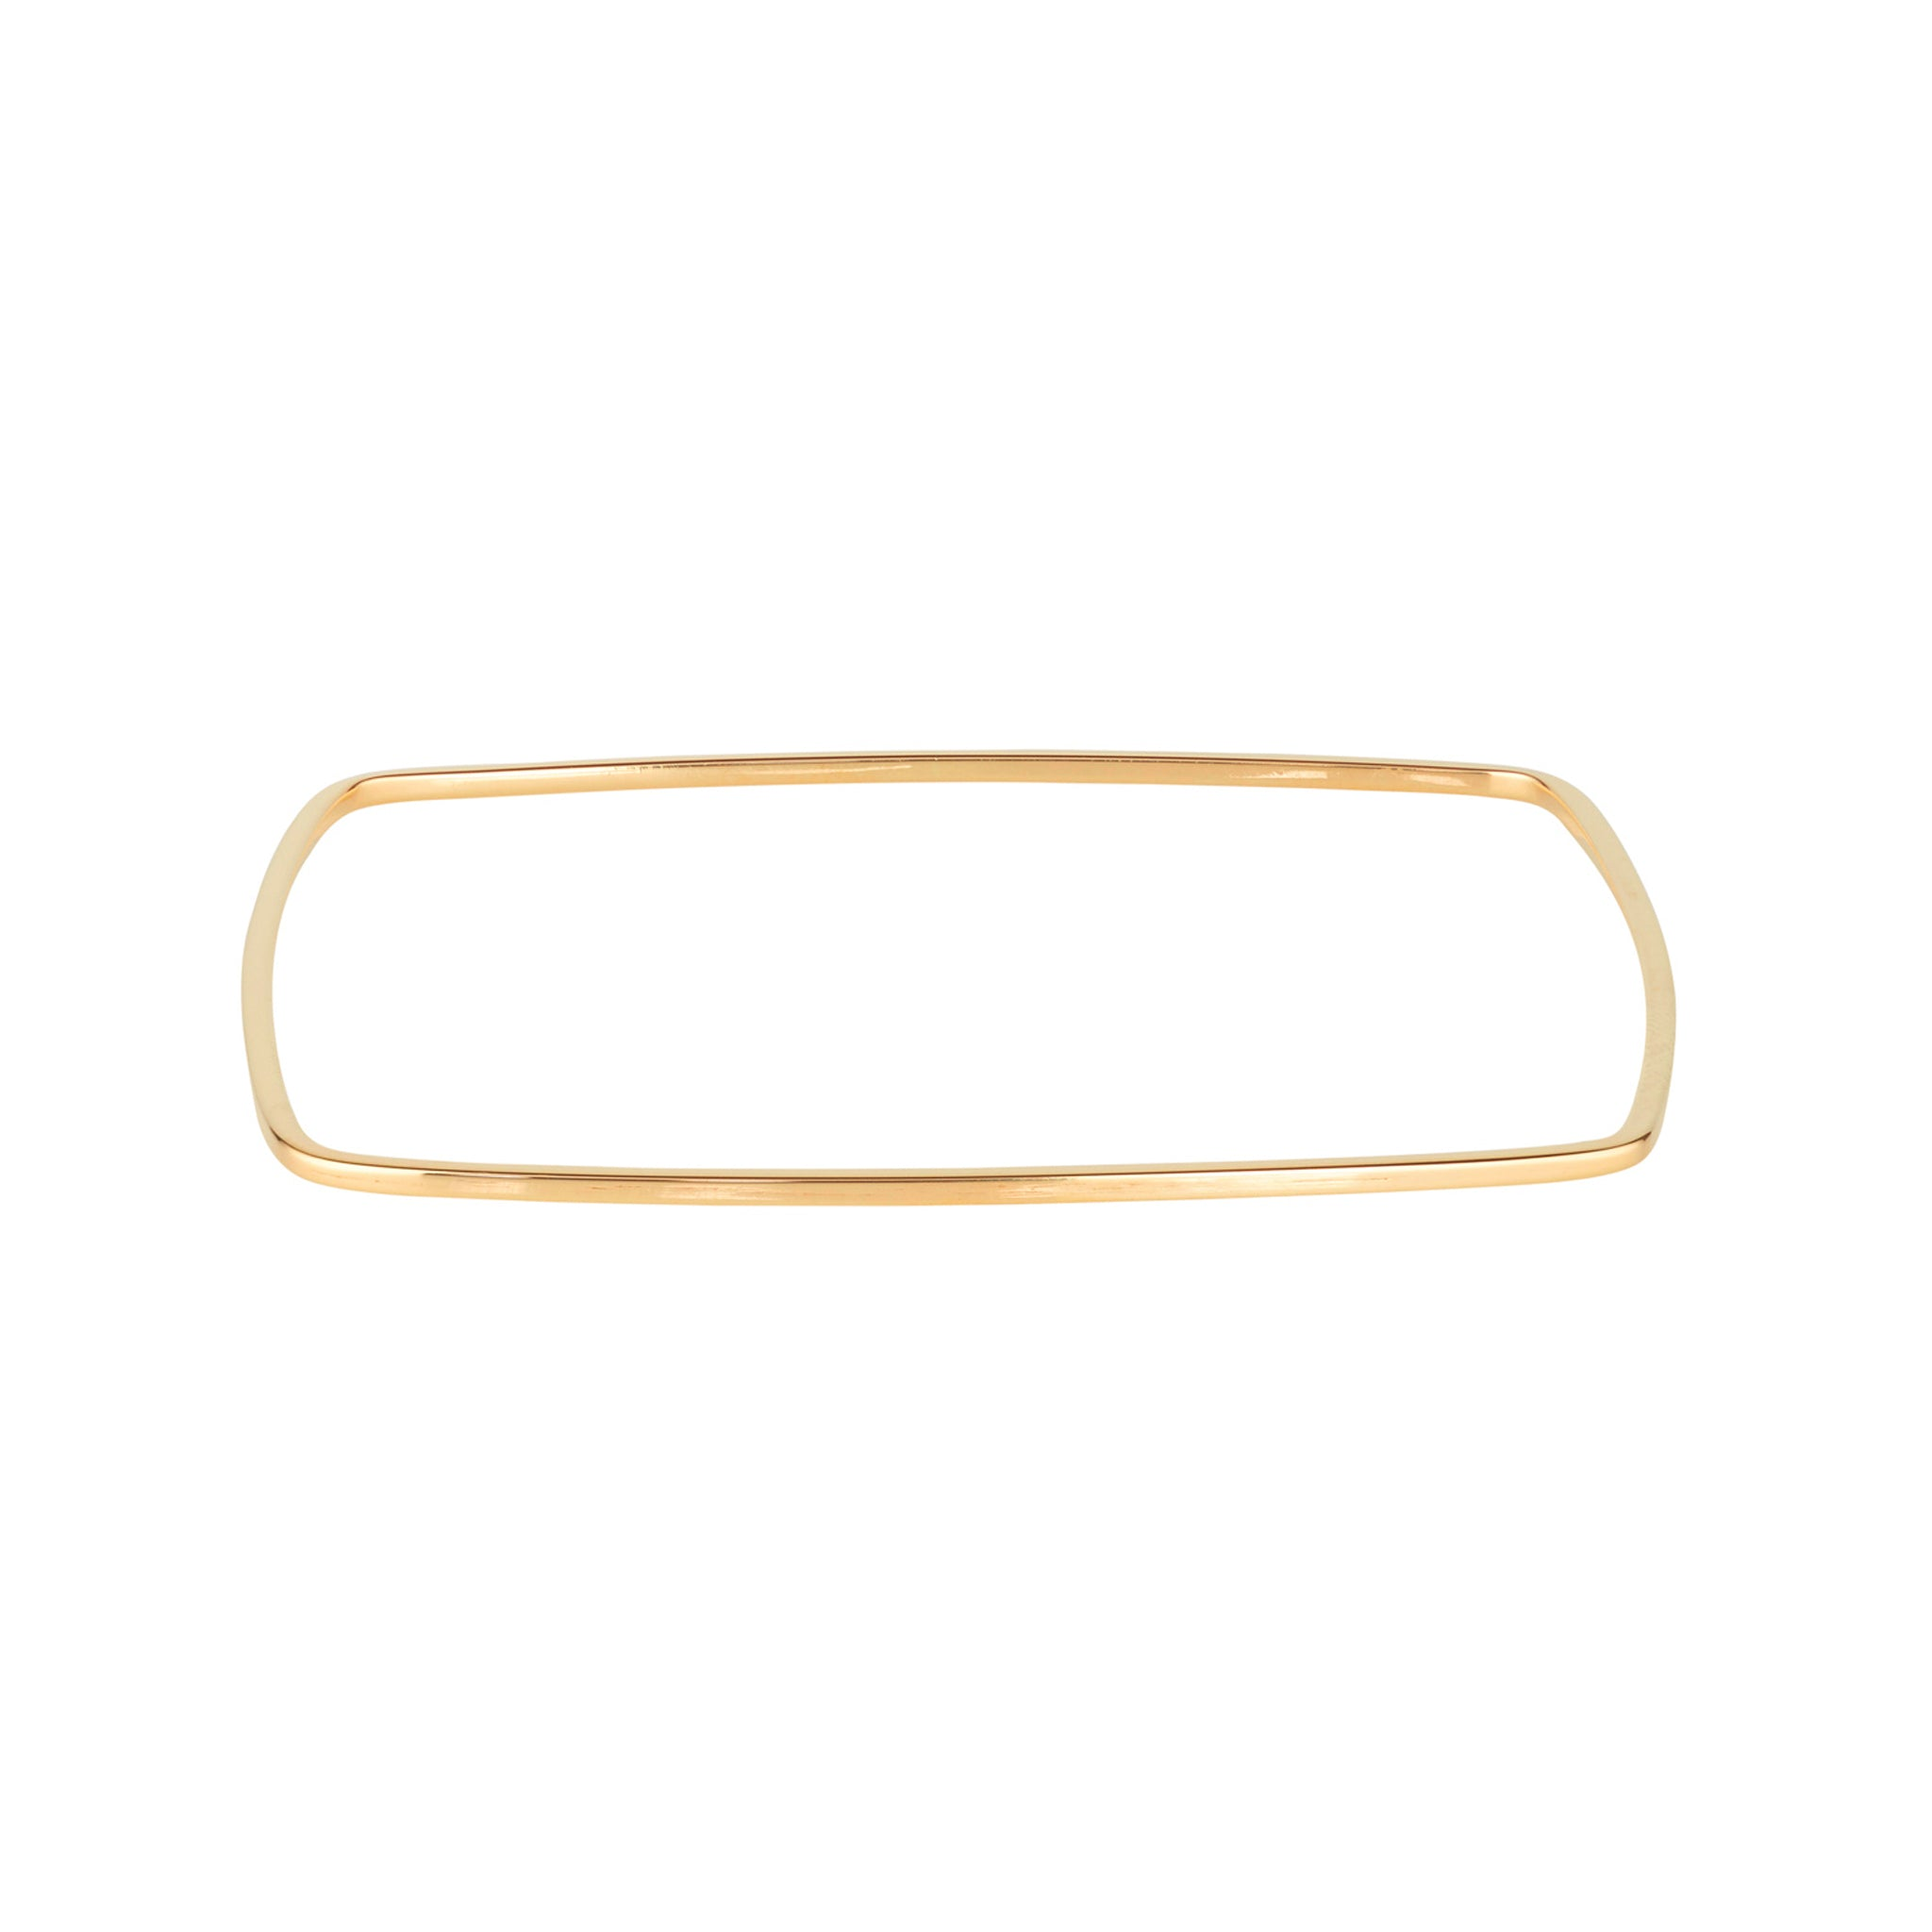 9kt Gold Square Bangle - MoMuse Jewellery